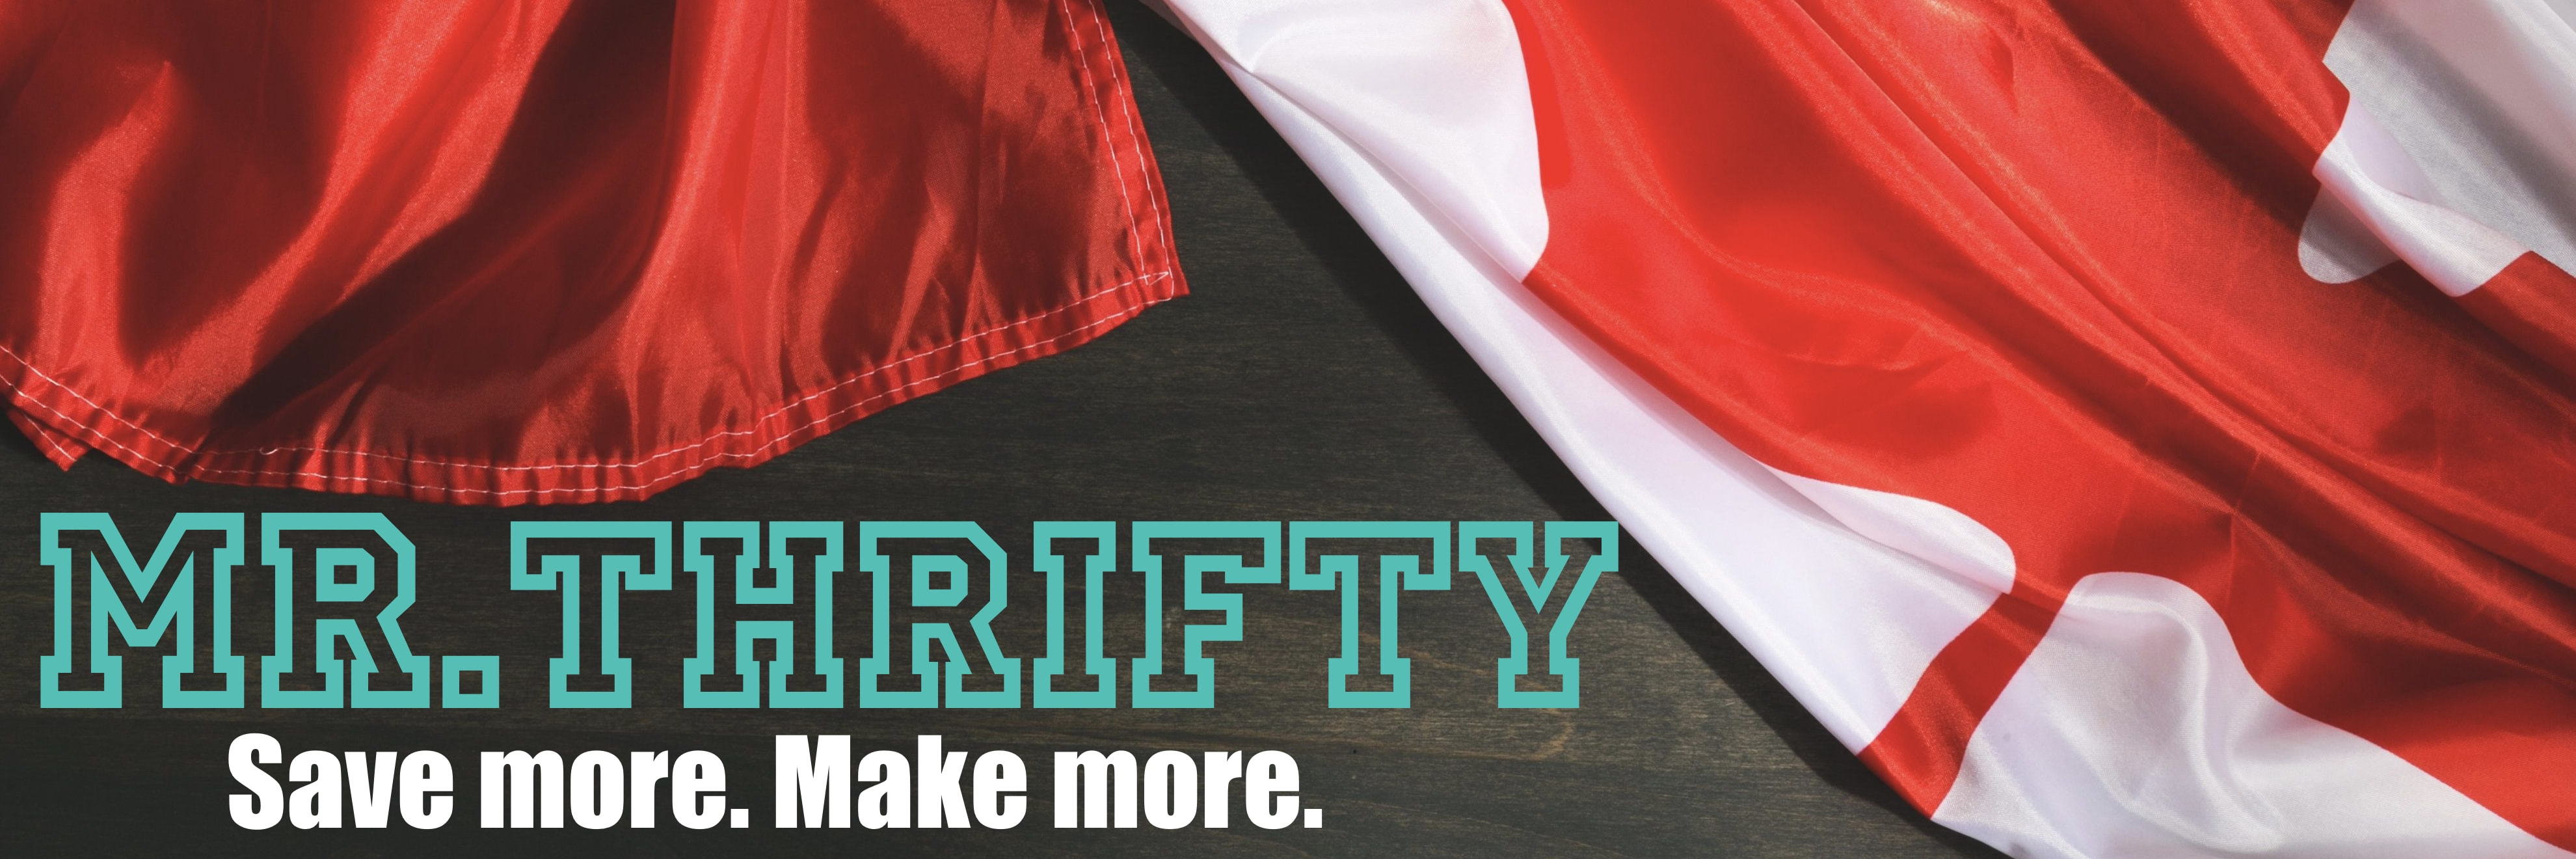 Mr  Thrifty Canada - Save More  Make More  Live Bigly  |